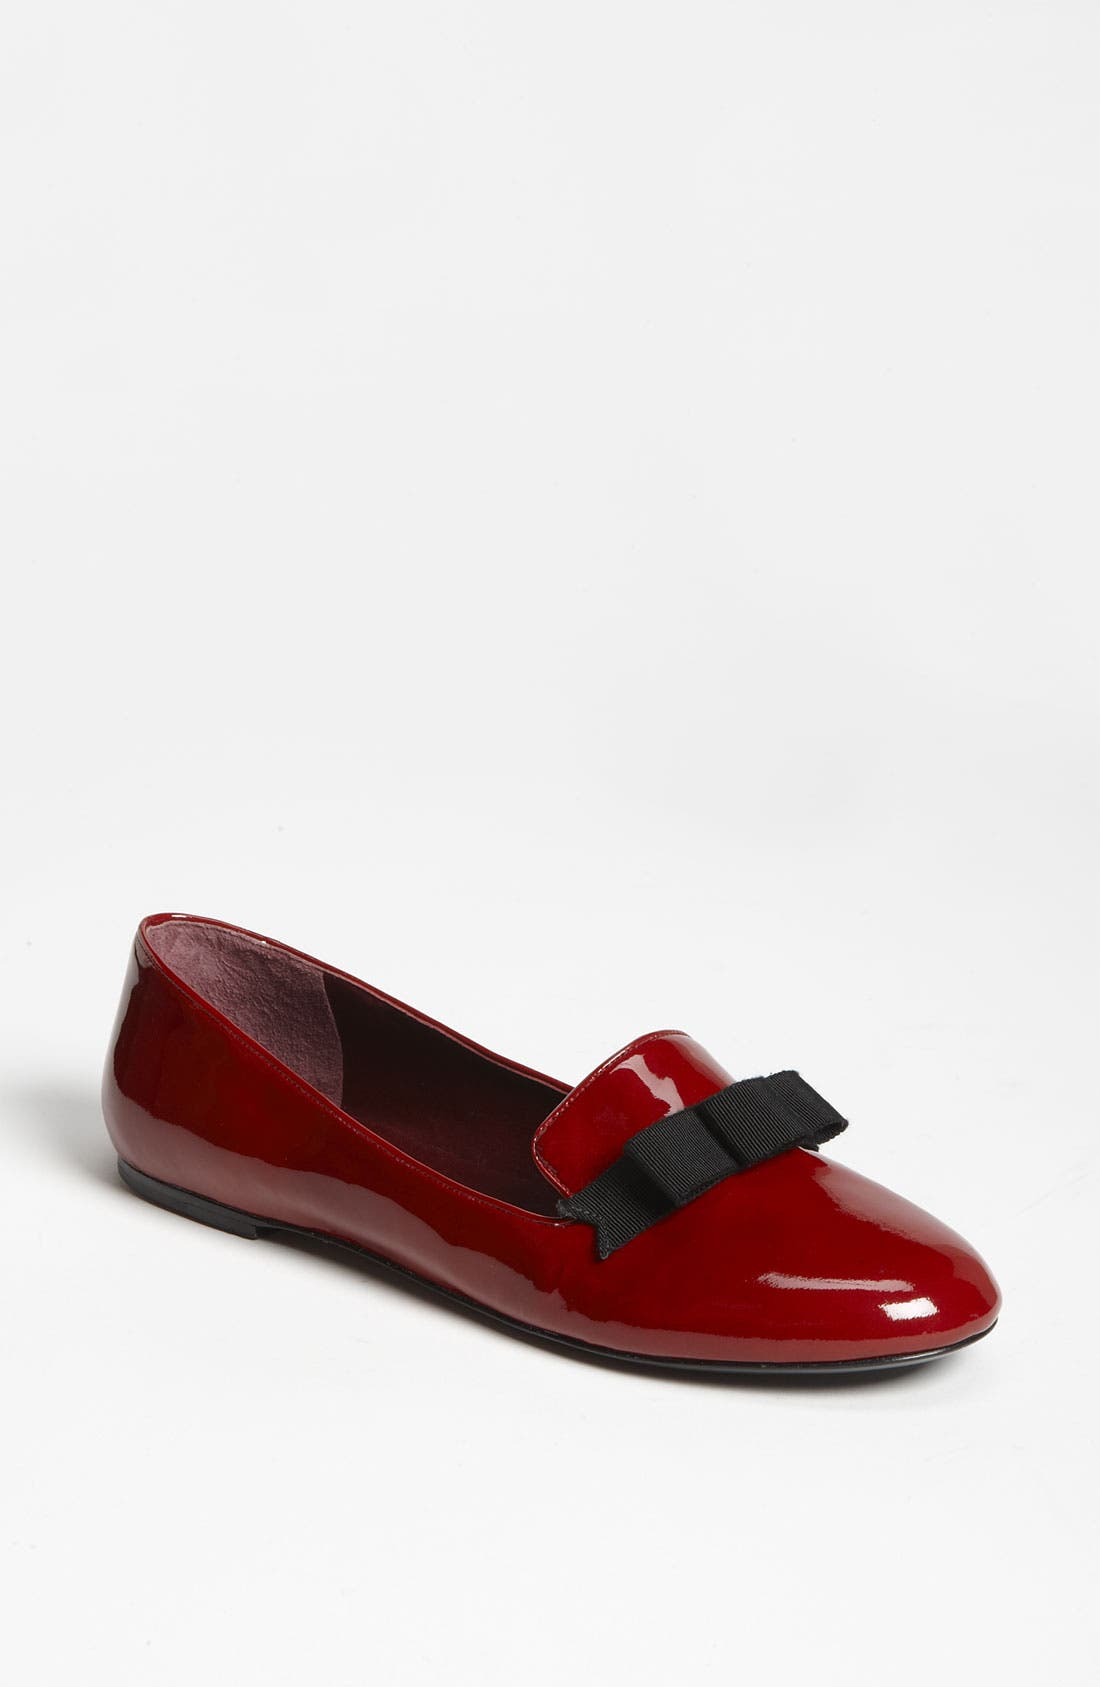 Alternate Image 1 Selected - MARC BY MARC JACOBS Slipper Loafer